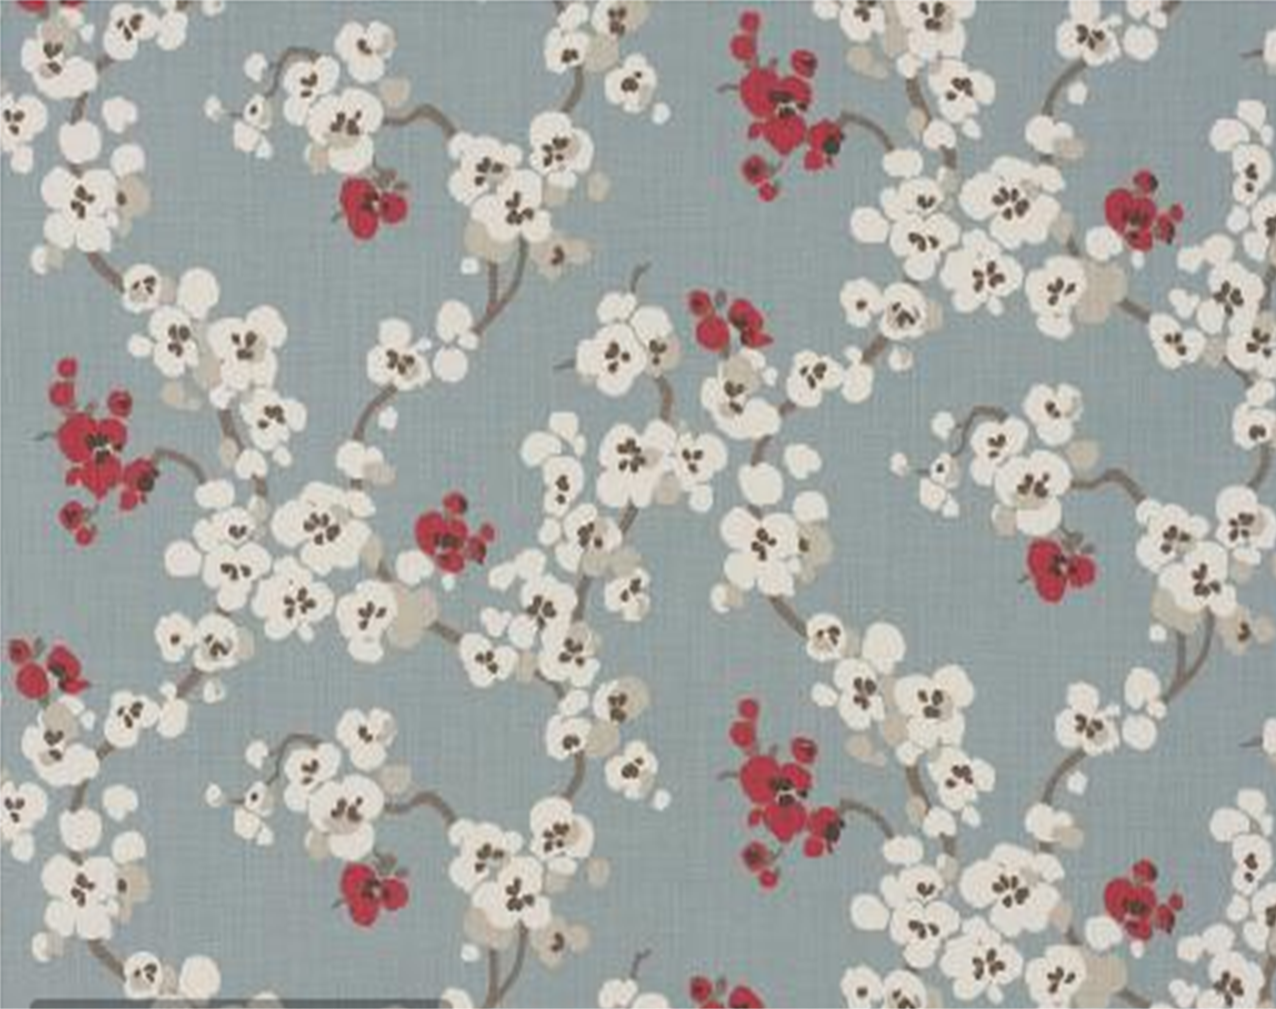 floral print fabrics from the UK Romo fabrics have the